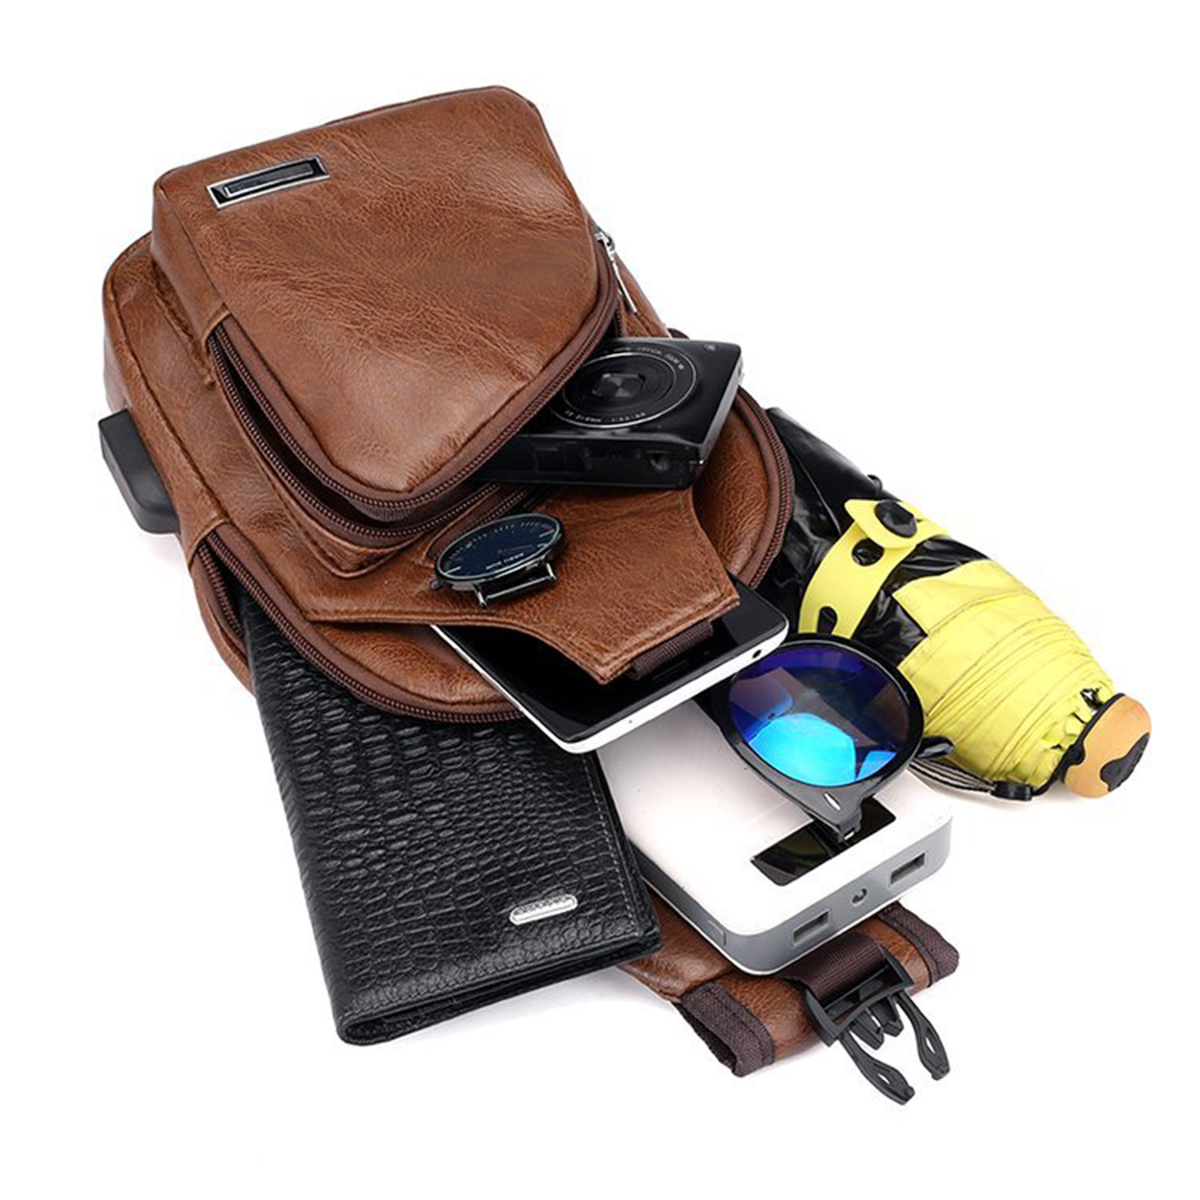 Casual Outdoor Travel USB Charging Port Sling Bag Leather Chest Bag Crossbody Bag